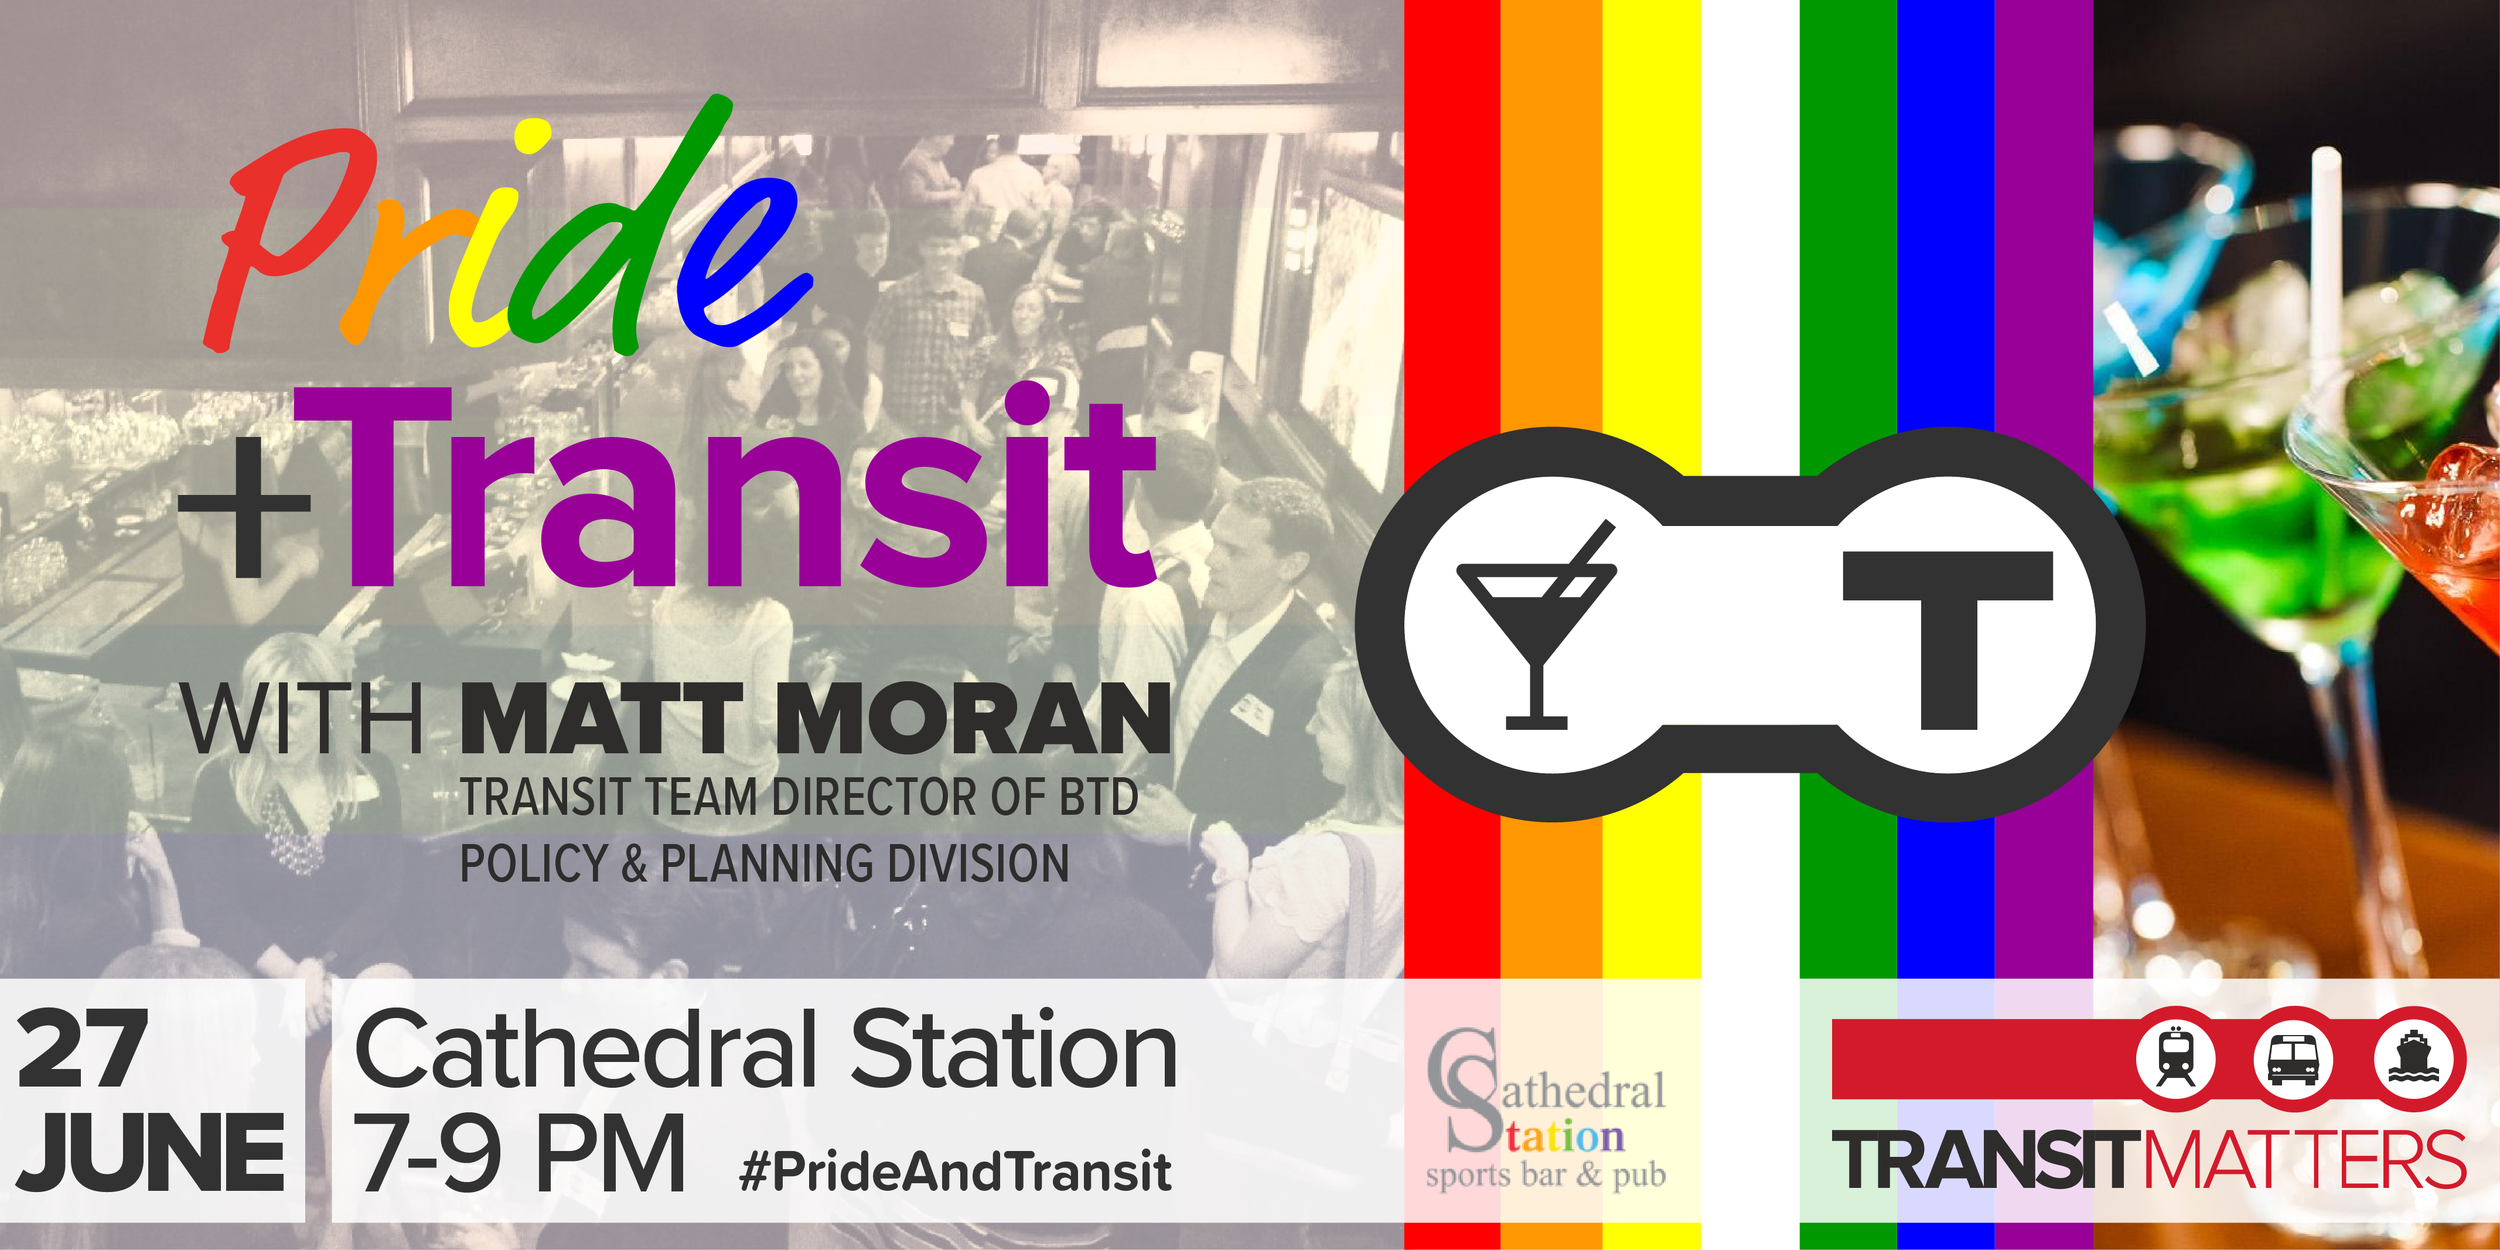 2019.06.27 - Pride and Transit_Twitter Promo.png